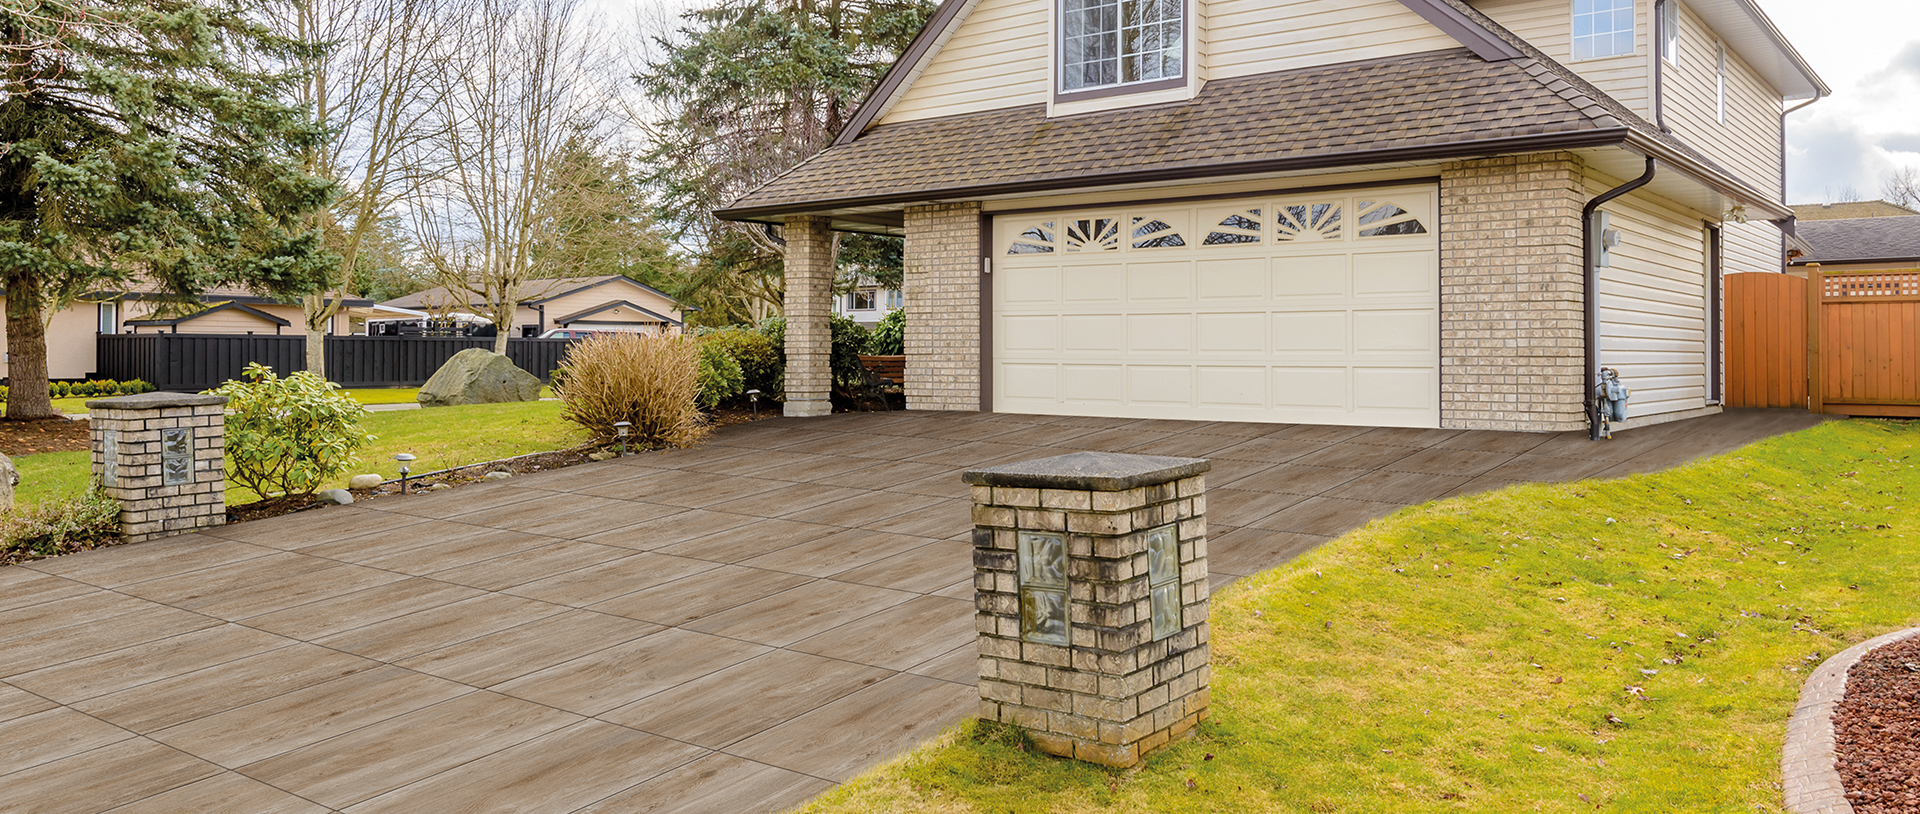 Driveway Application with 3CM SH Series HDG Chiaro Cream Porcelain Pavers - HDG Building Materials